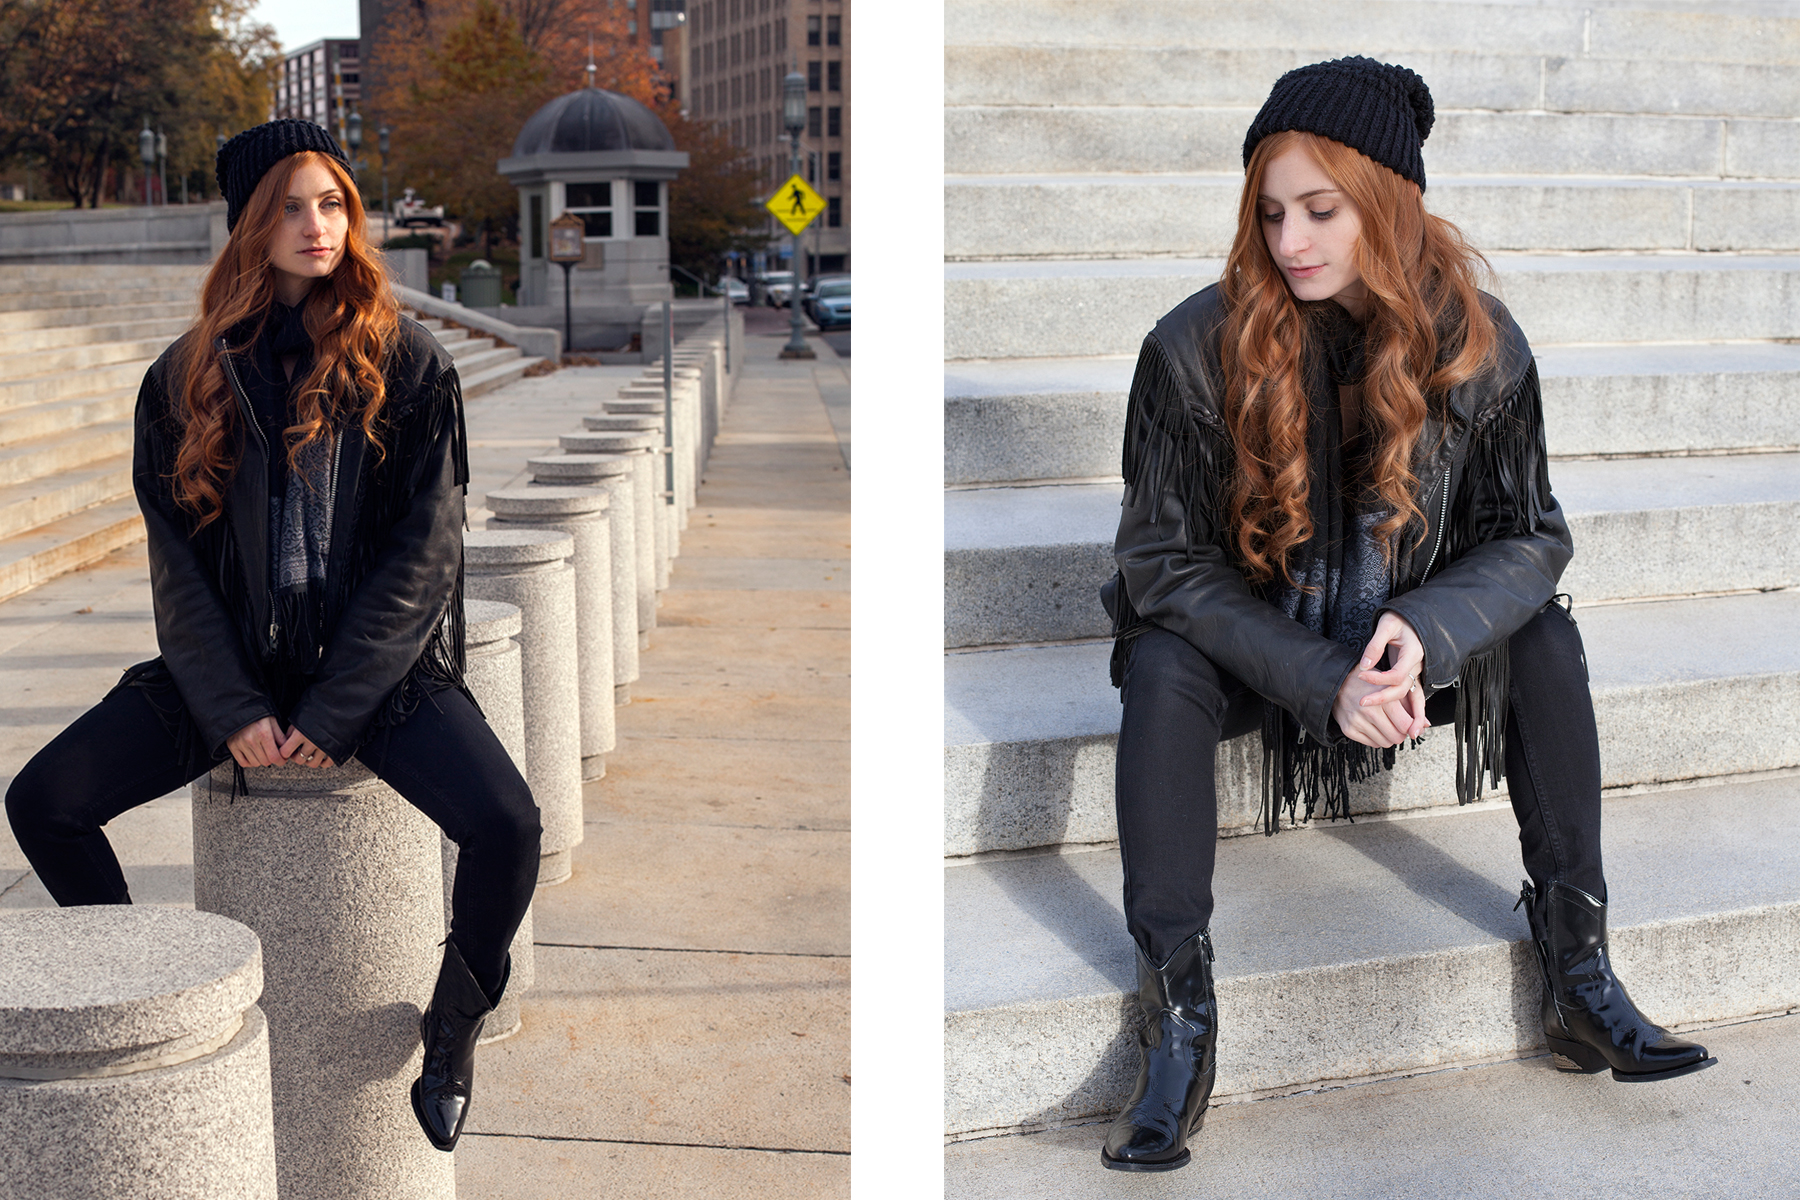 Redhead girl looking off to side and sitting in leather jacket